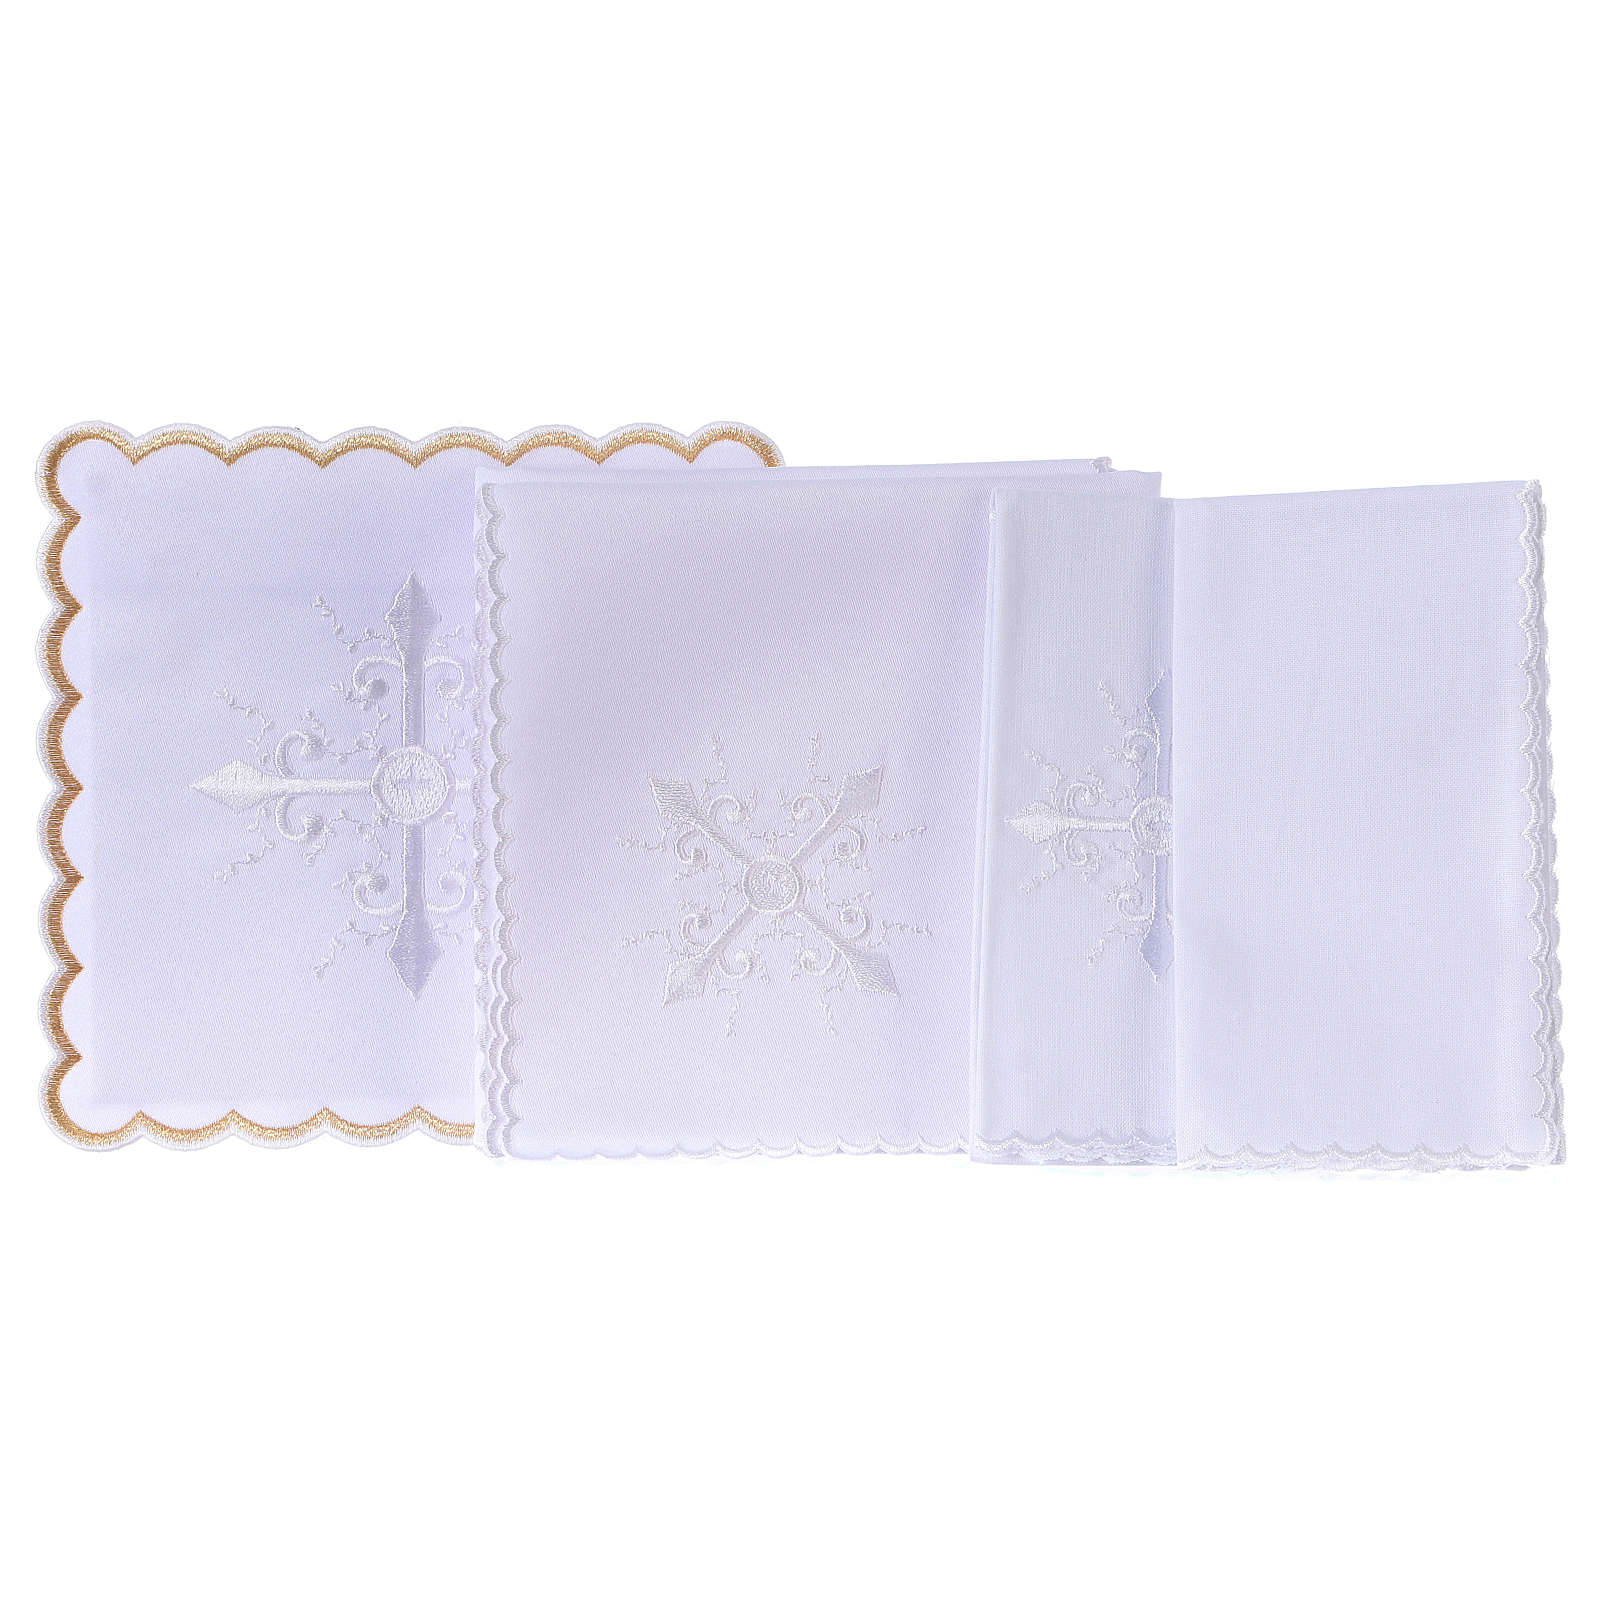 Altar linen white embroideries and baroque cross, cotton 4